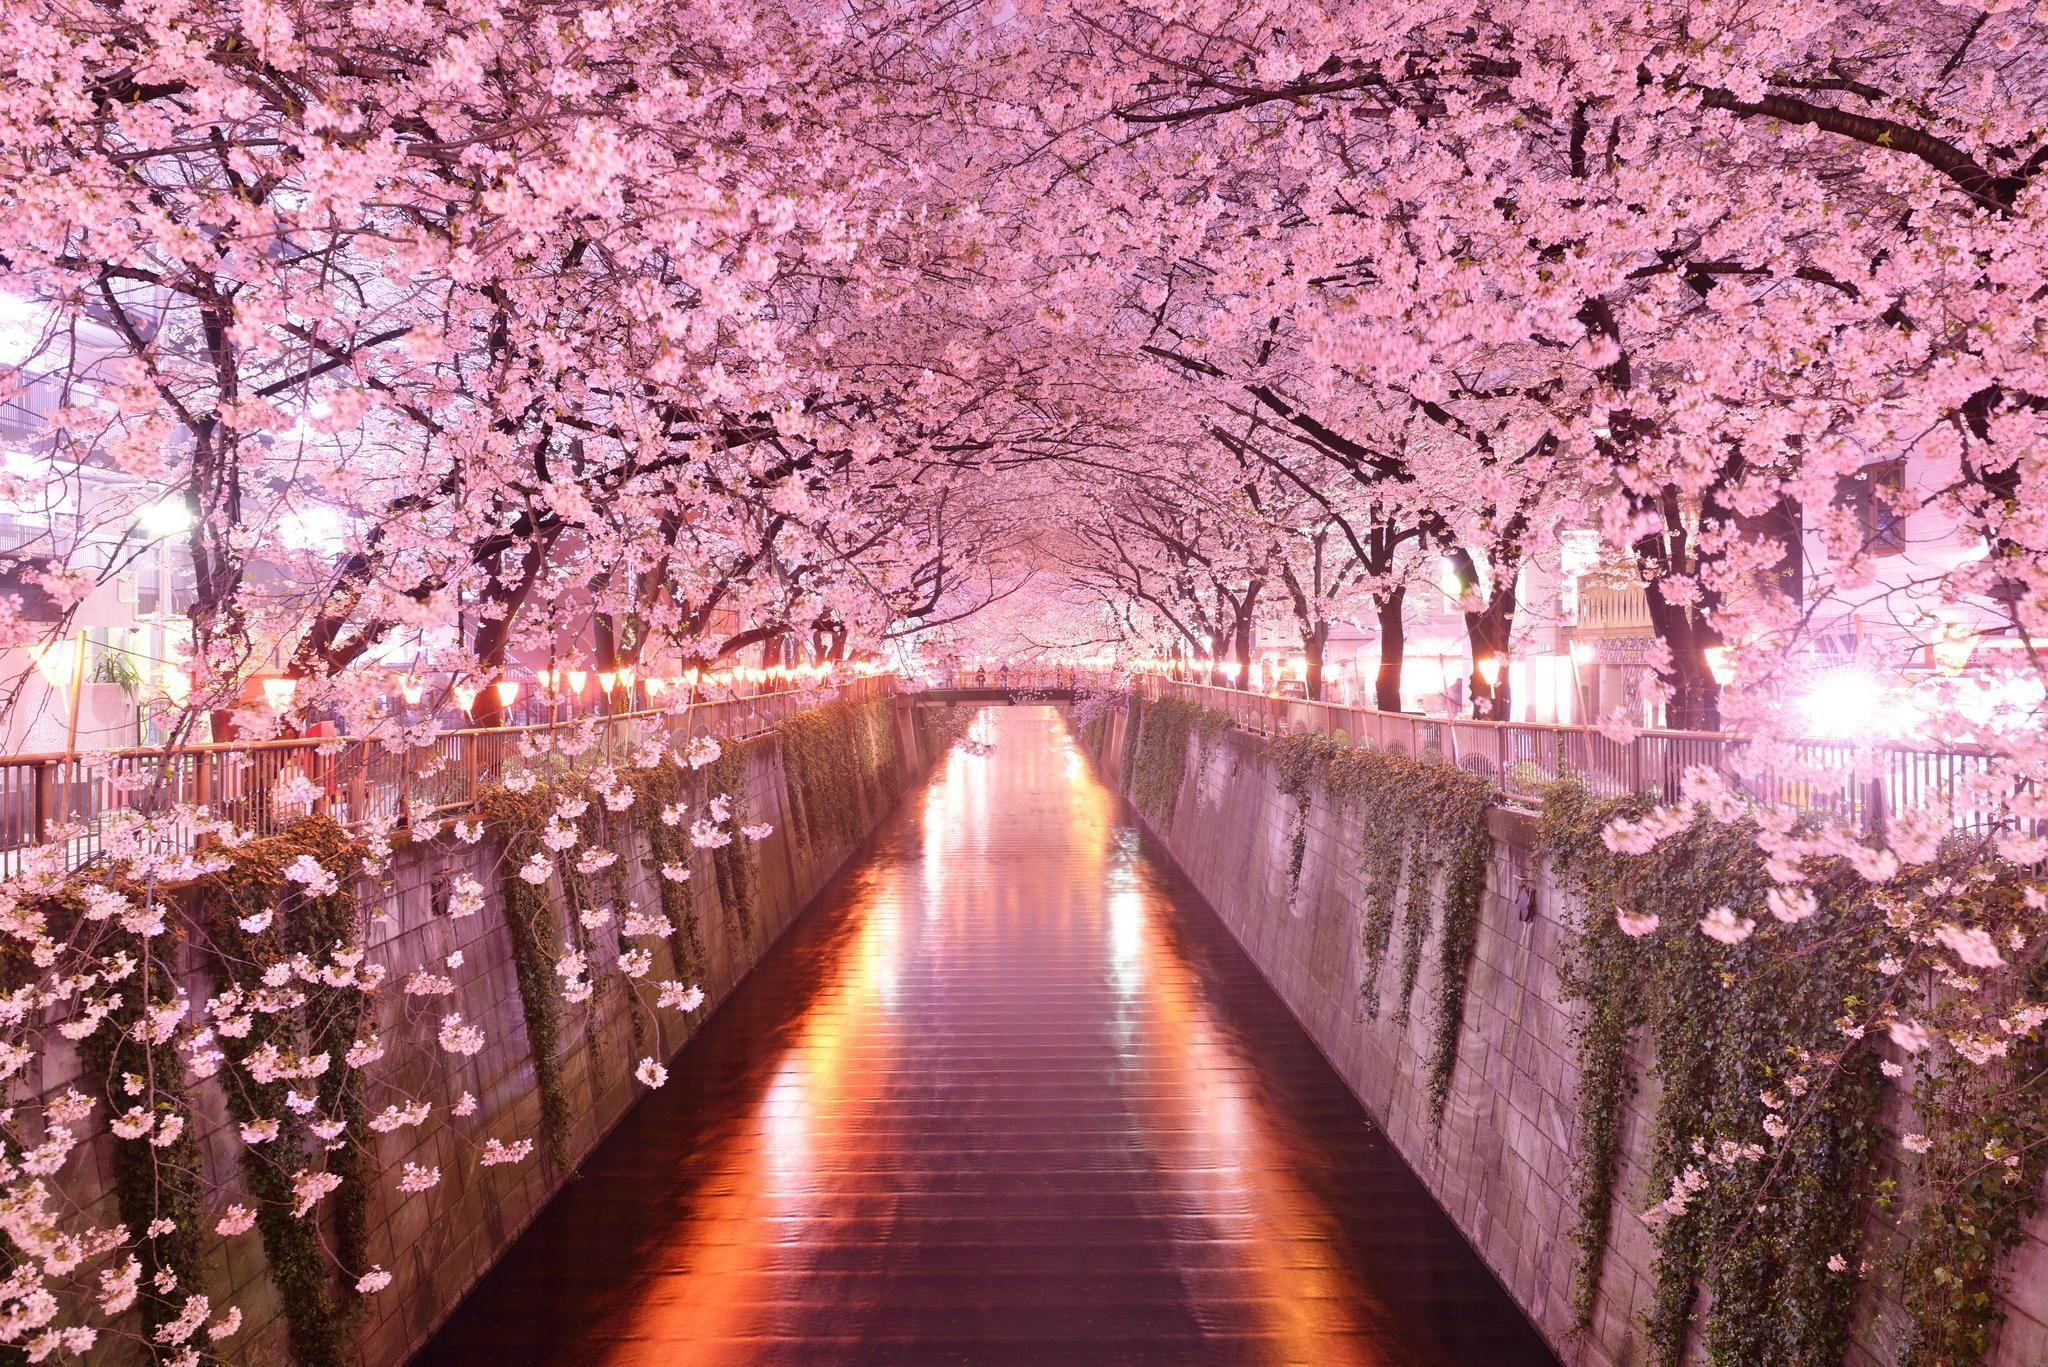 Why Should You Download and Try a High Quality Sakura Picture design?